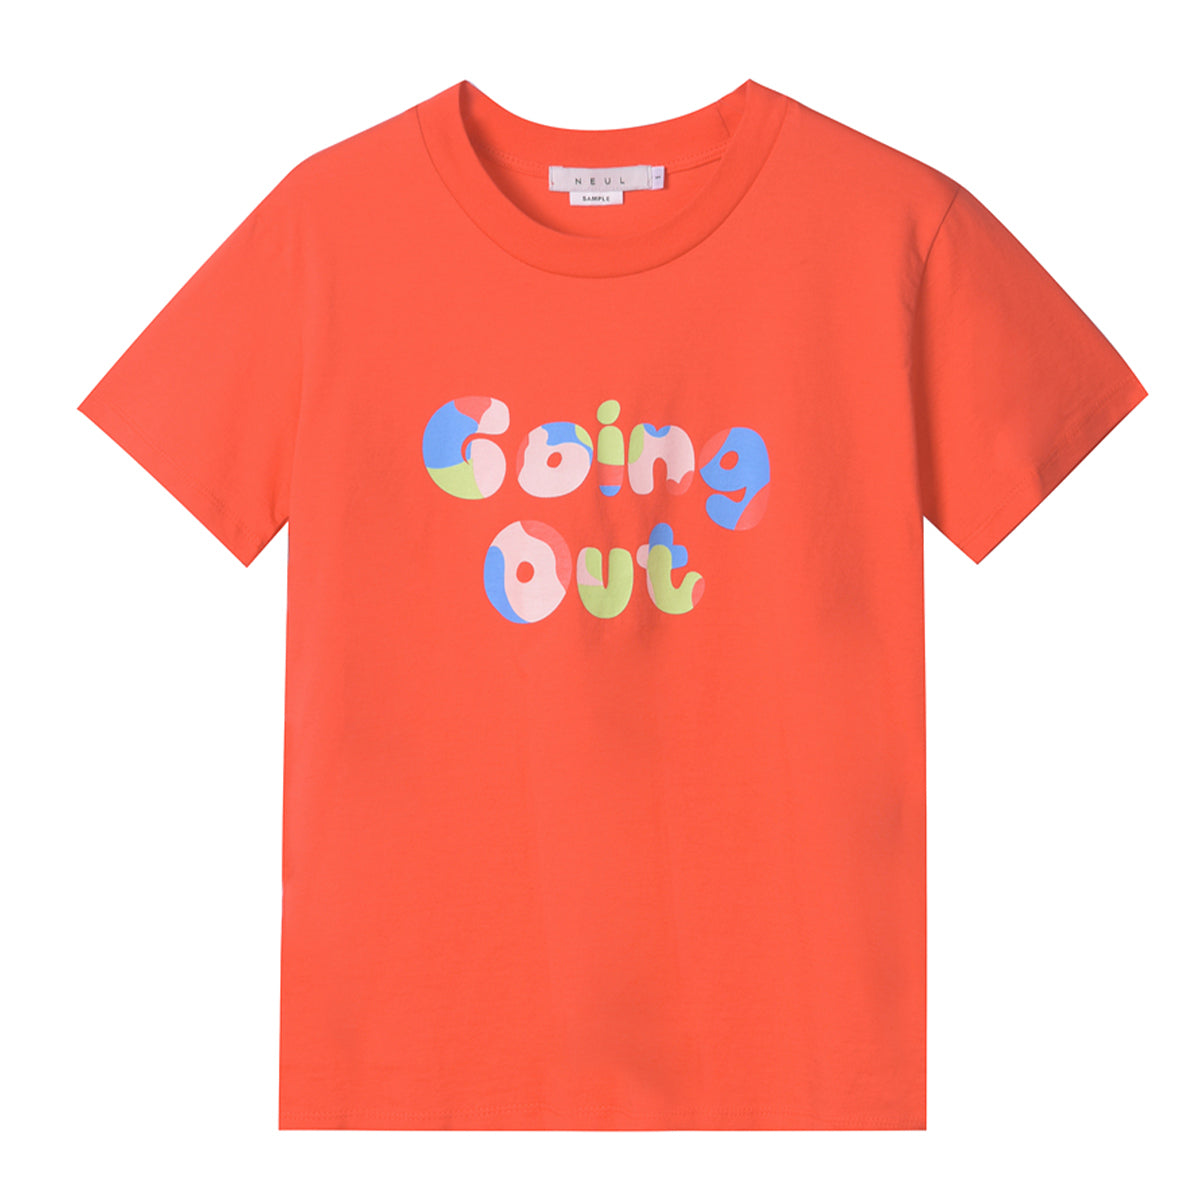 Neul - Going out t-shirt